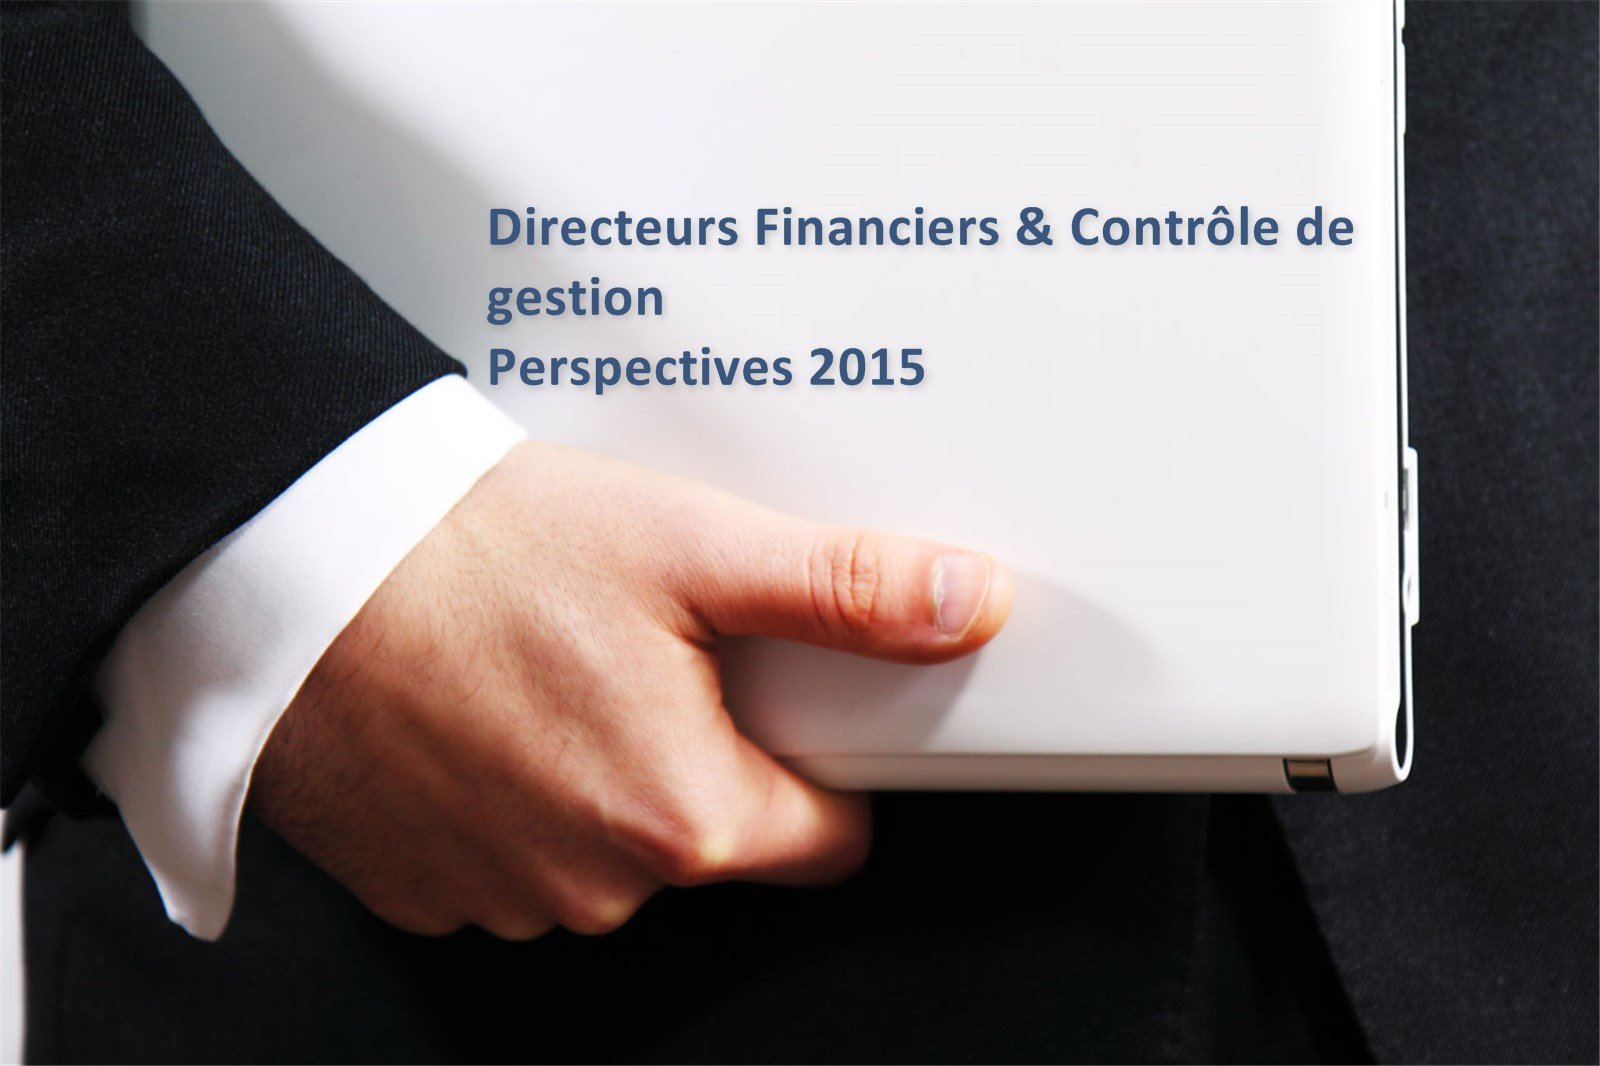 DFCG Perspectives 2015 le CPM (Corporate Performance Management) à l'honneur